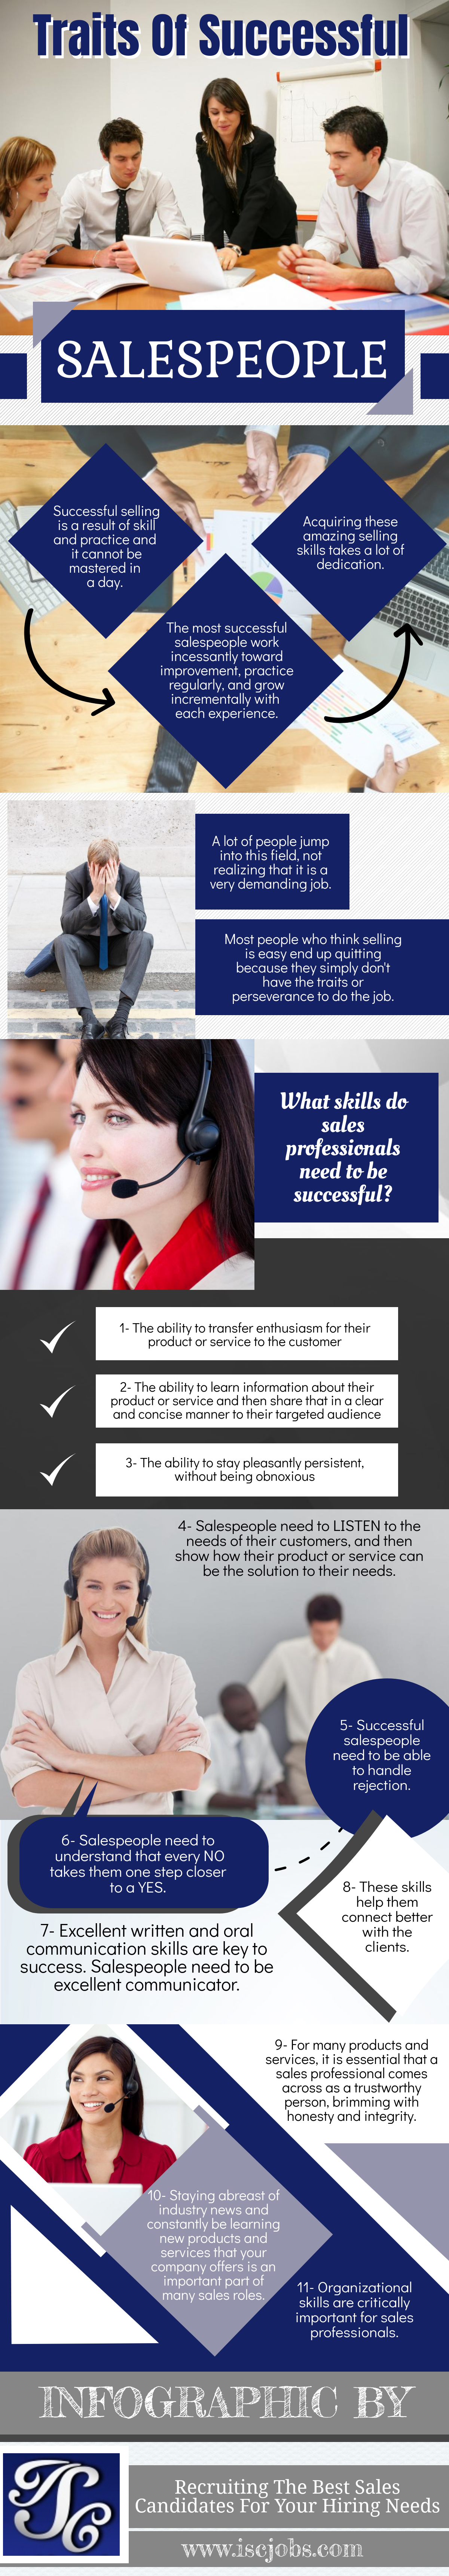 Infographic; Key Traits of Successful Salespeople